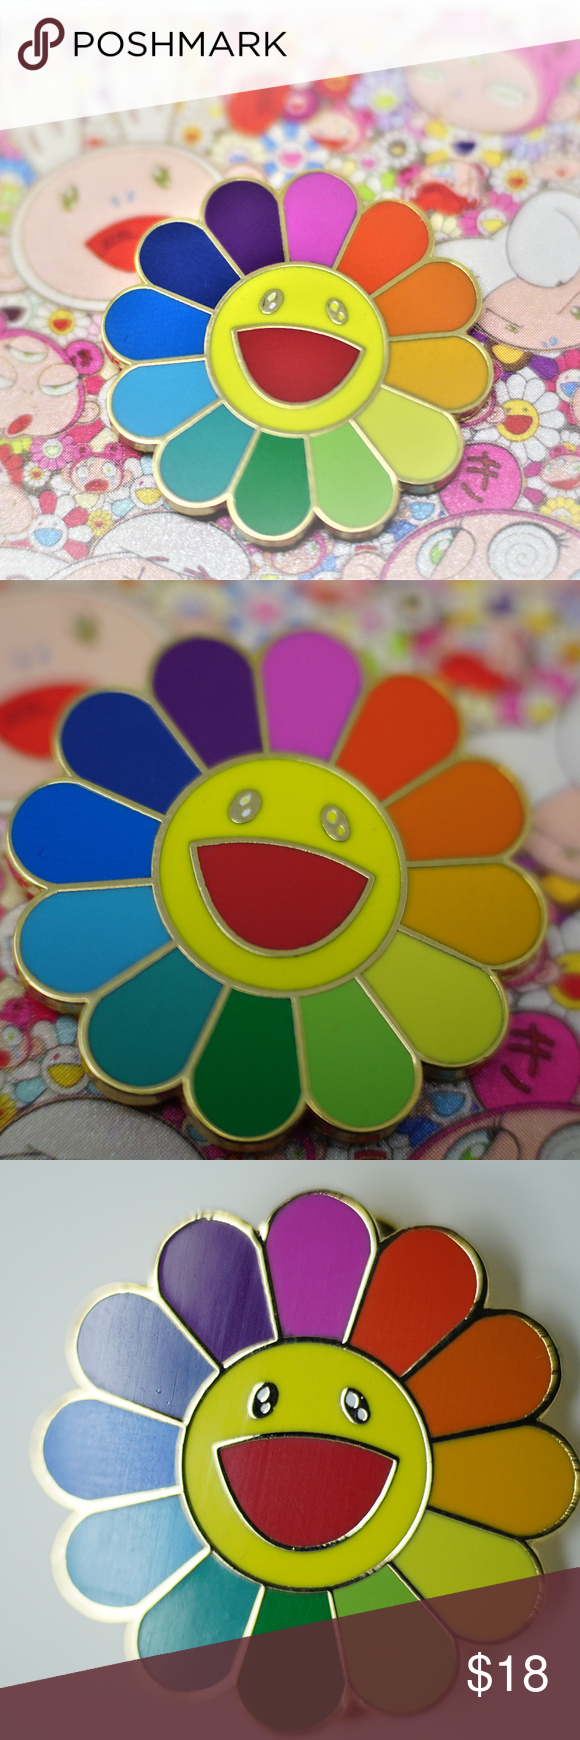 Murakami Flower PIn Brooch in 2020 Murakami flower